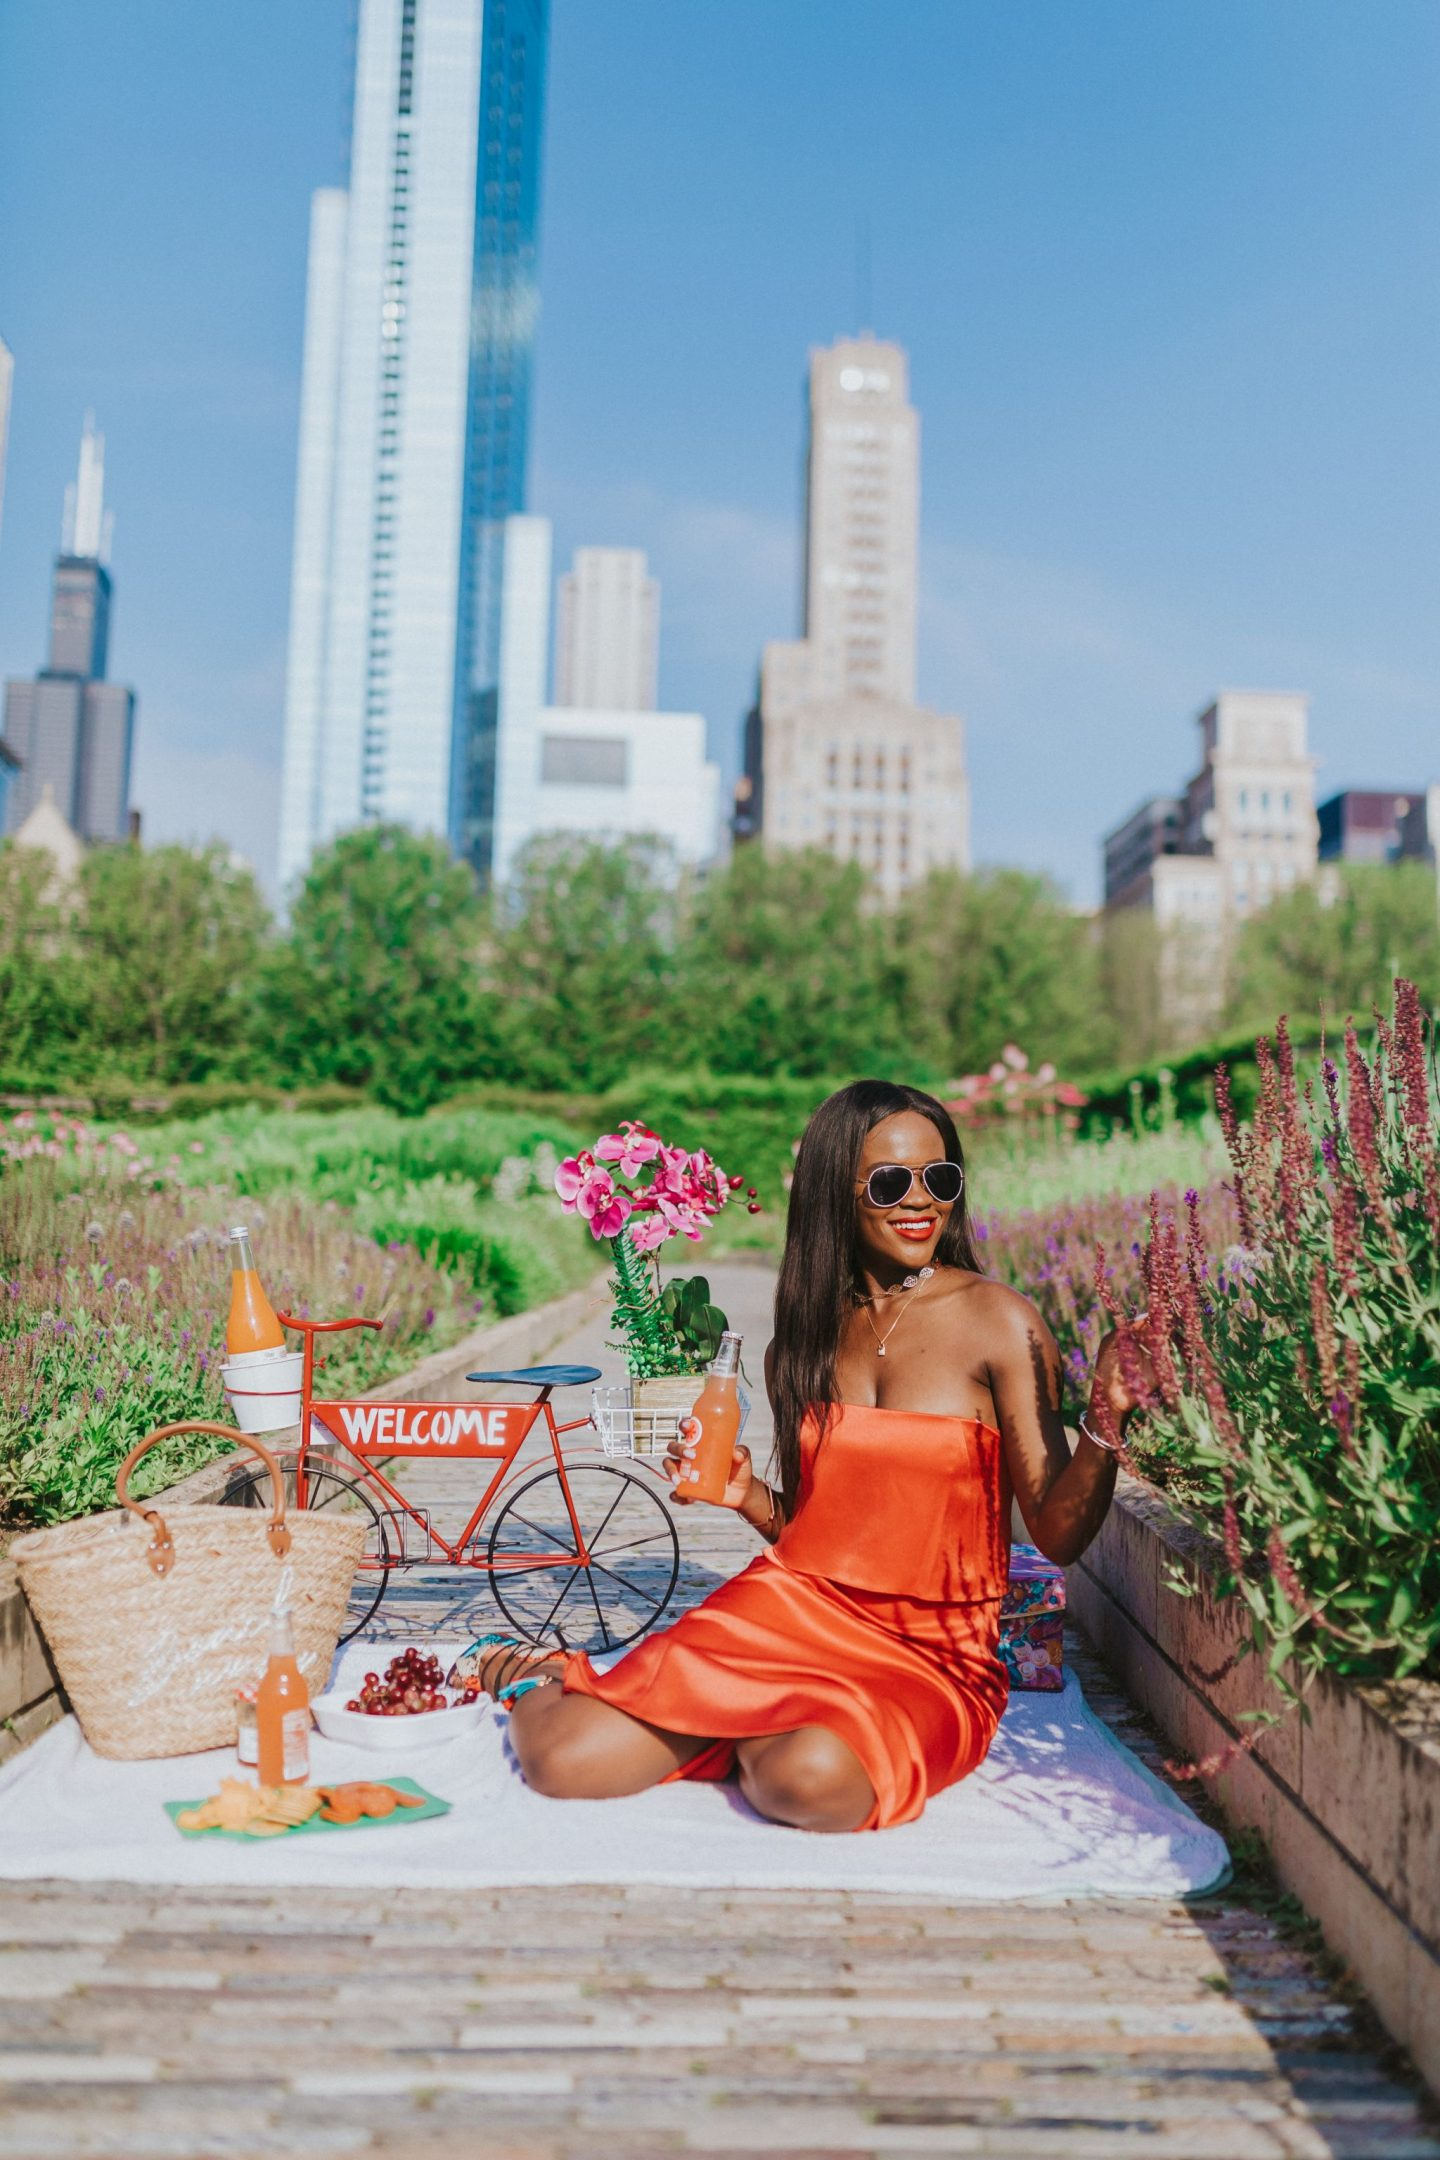 Cranberry Tantrums shows you how to plan the perfect picnic date in the Park. Jennifer Ibe